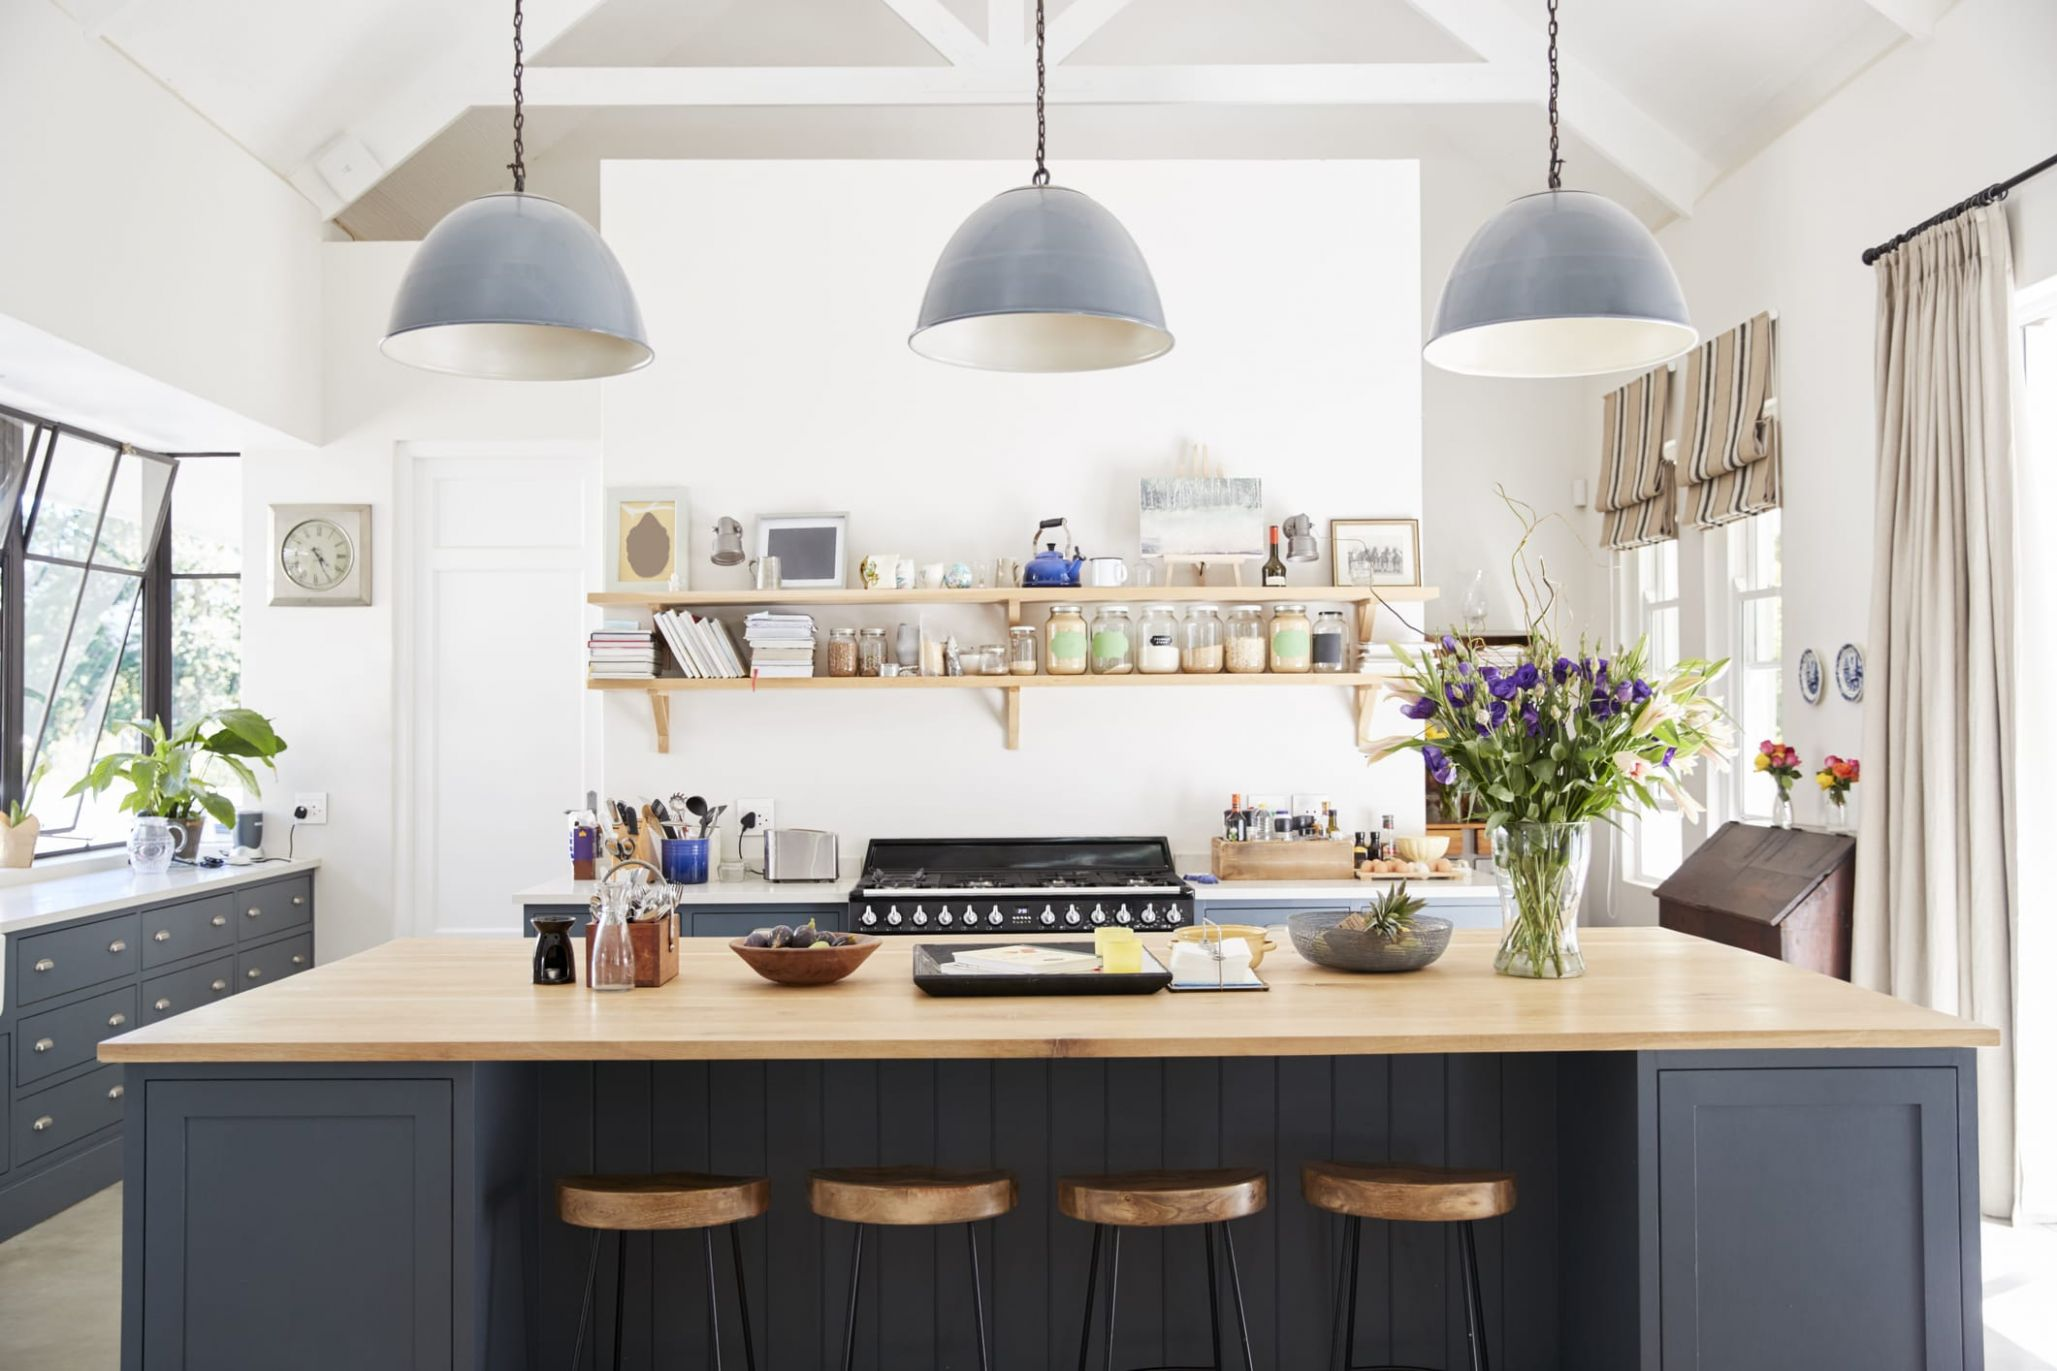 11 Easy Kitchen Lighting Ideas to Brighten Your New Kitchen ..